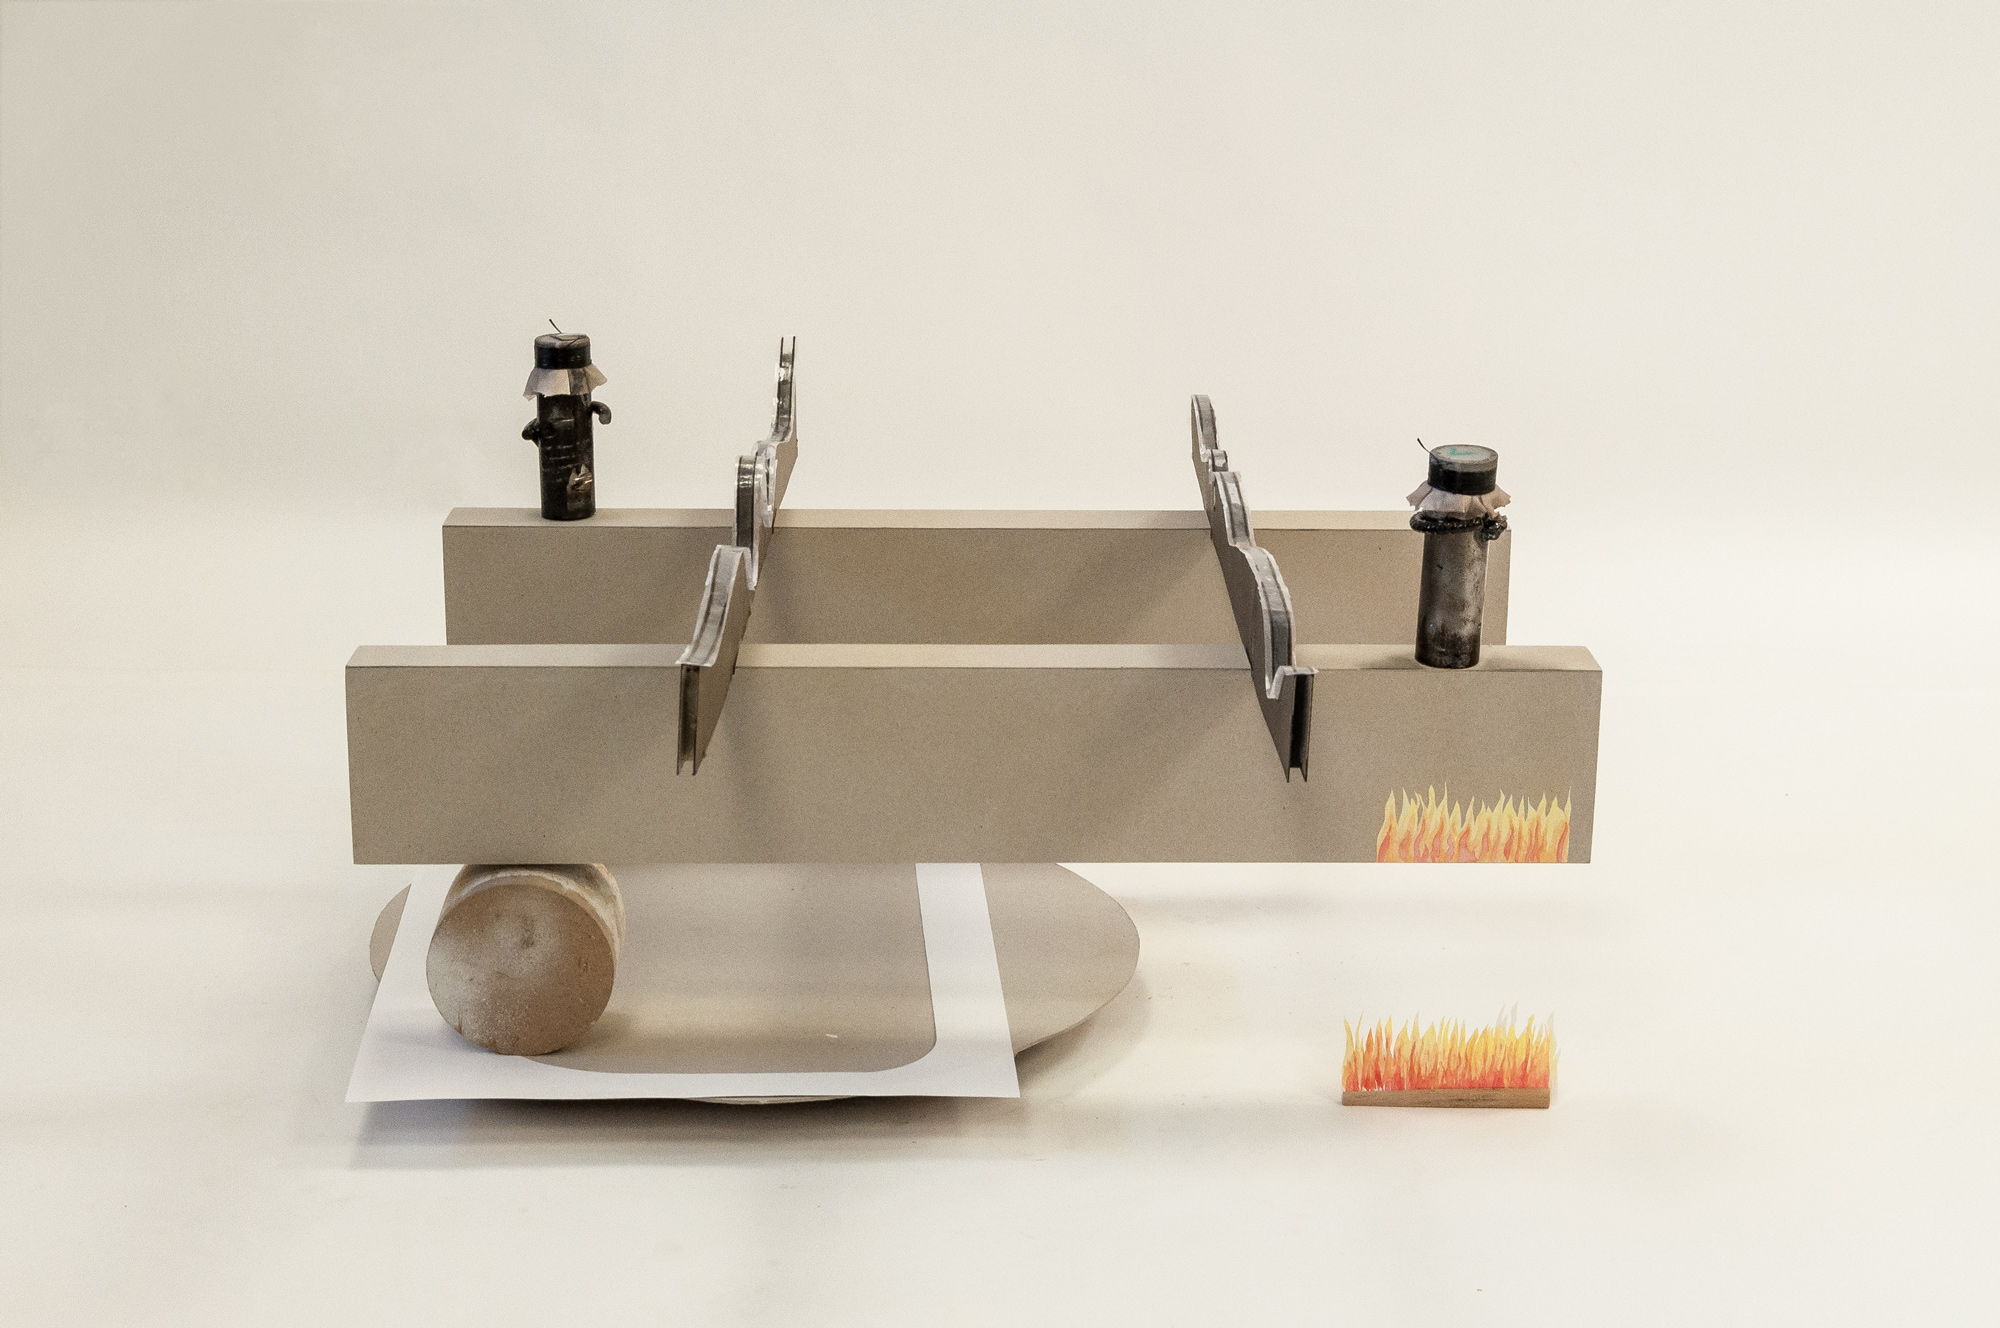 Untitled (pipes) │ metal, wood, plastic, cardboard, paper, fabric │ 2020 │ 38cm x 70cm x 70cm